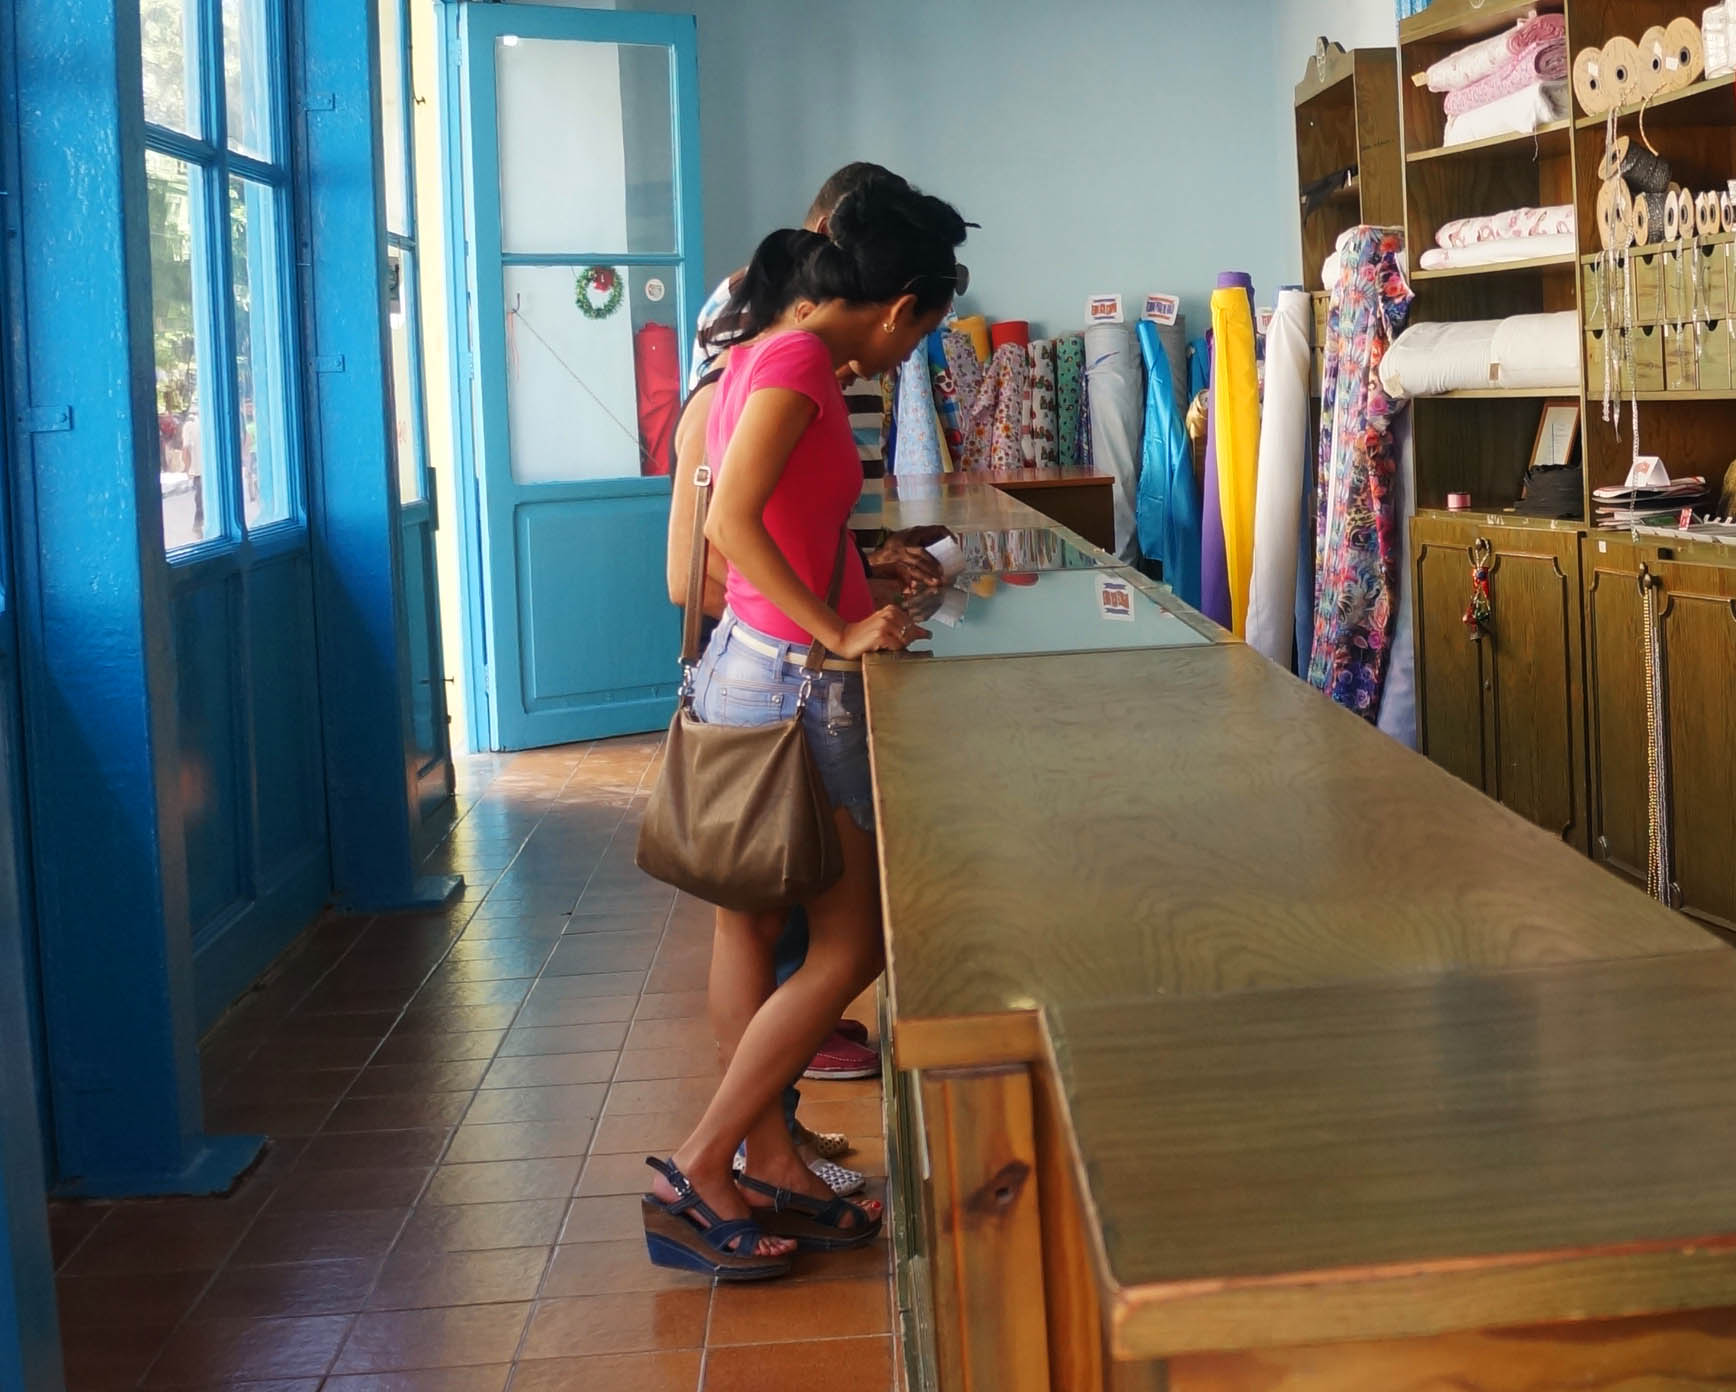 The Story of a Red Dress in Cuba